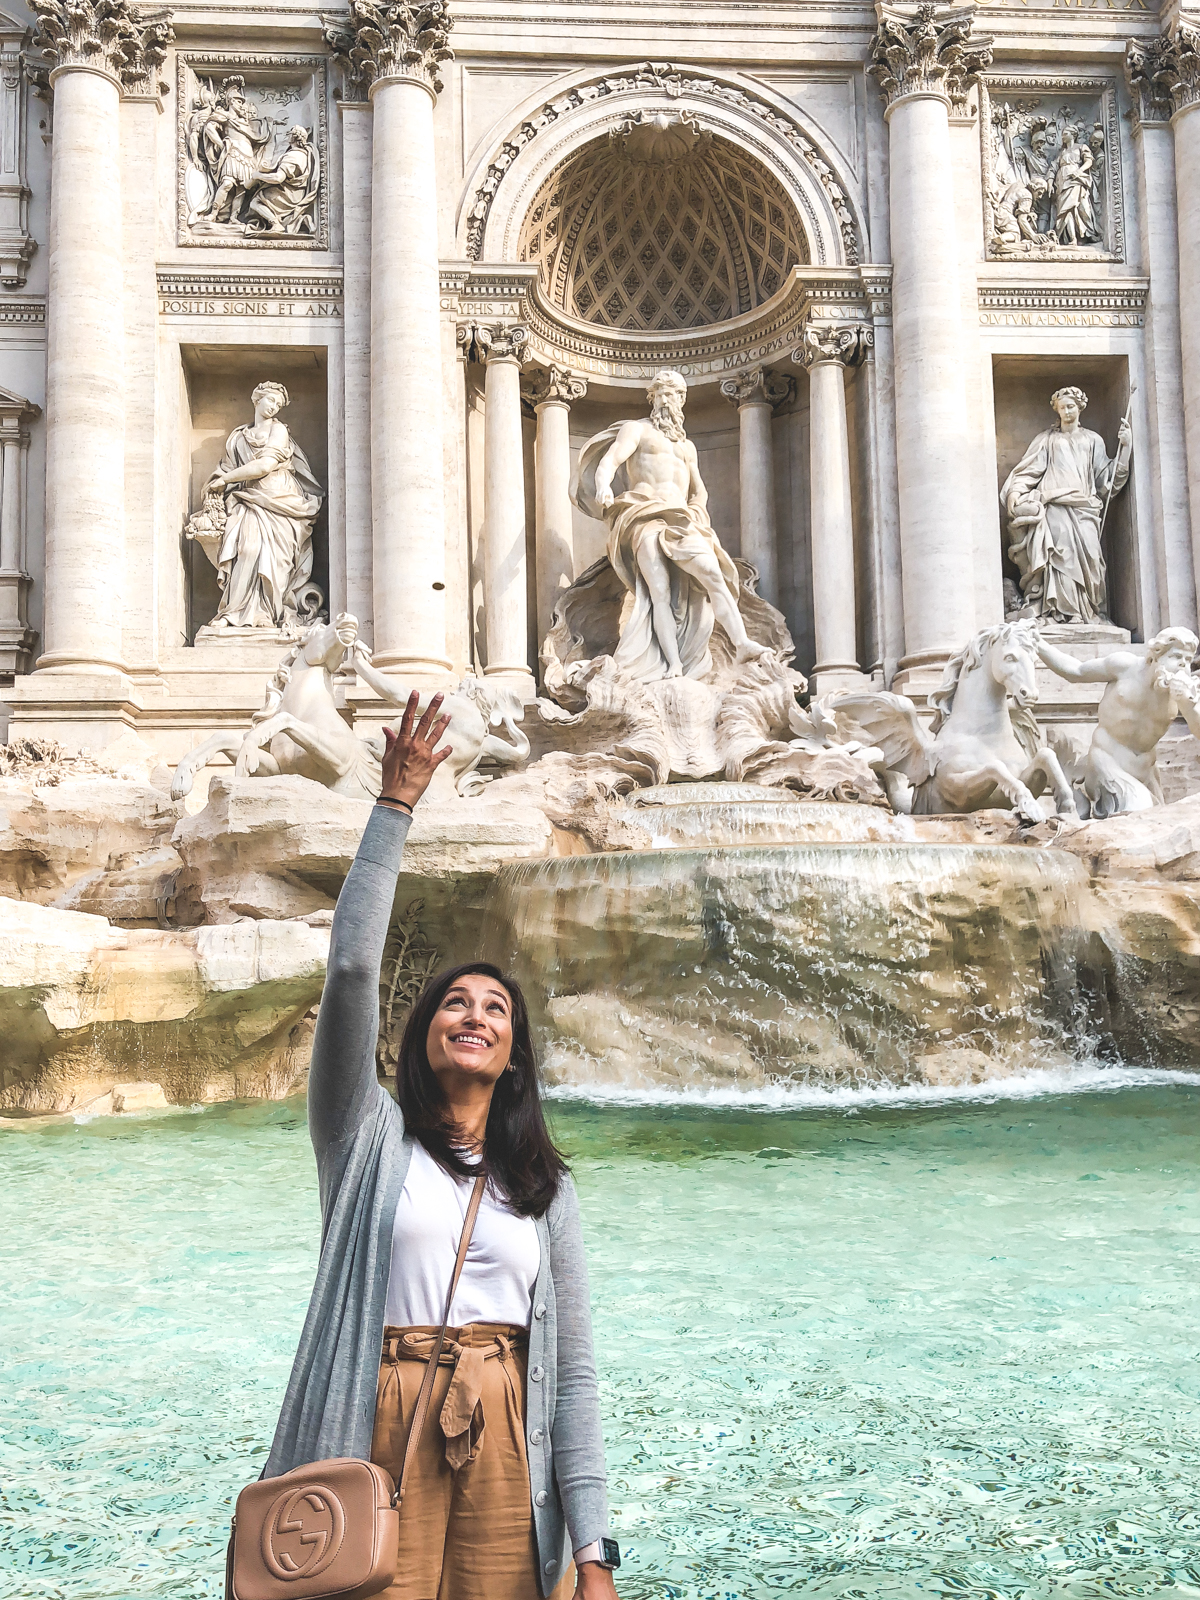 me throwing a penny into the Trevi Fountain